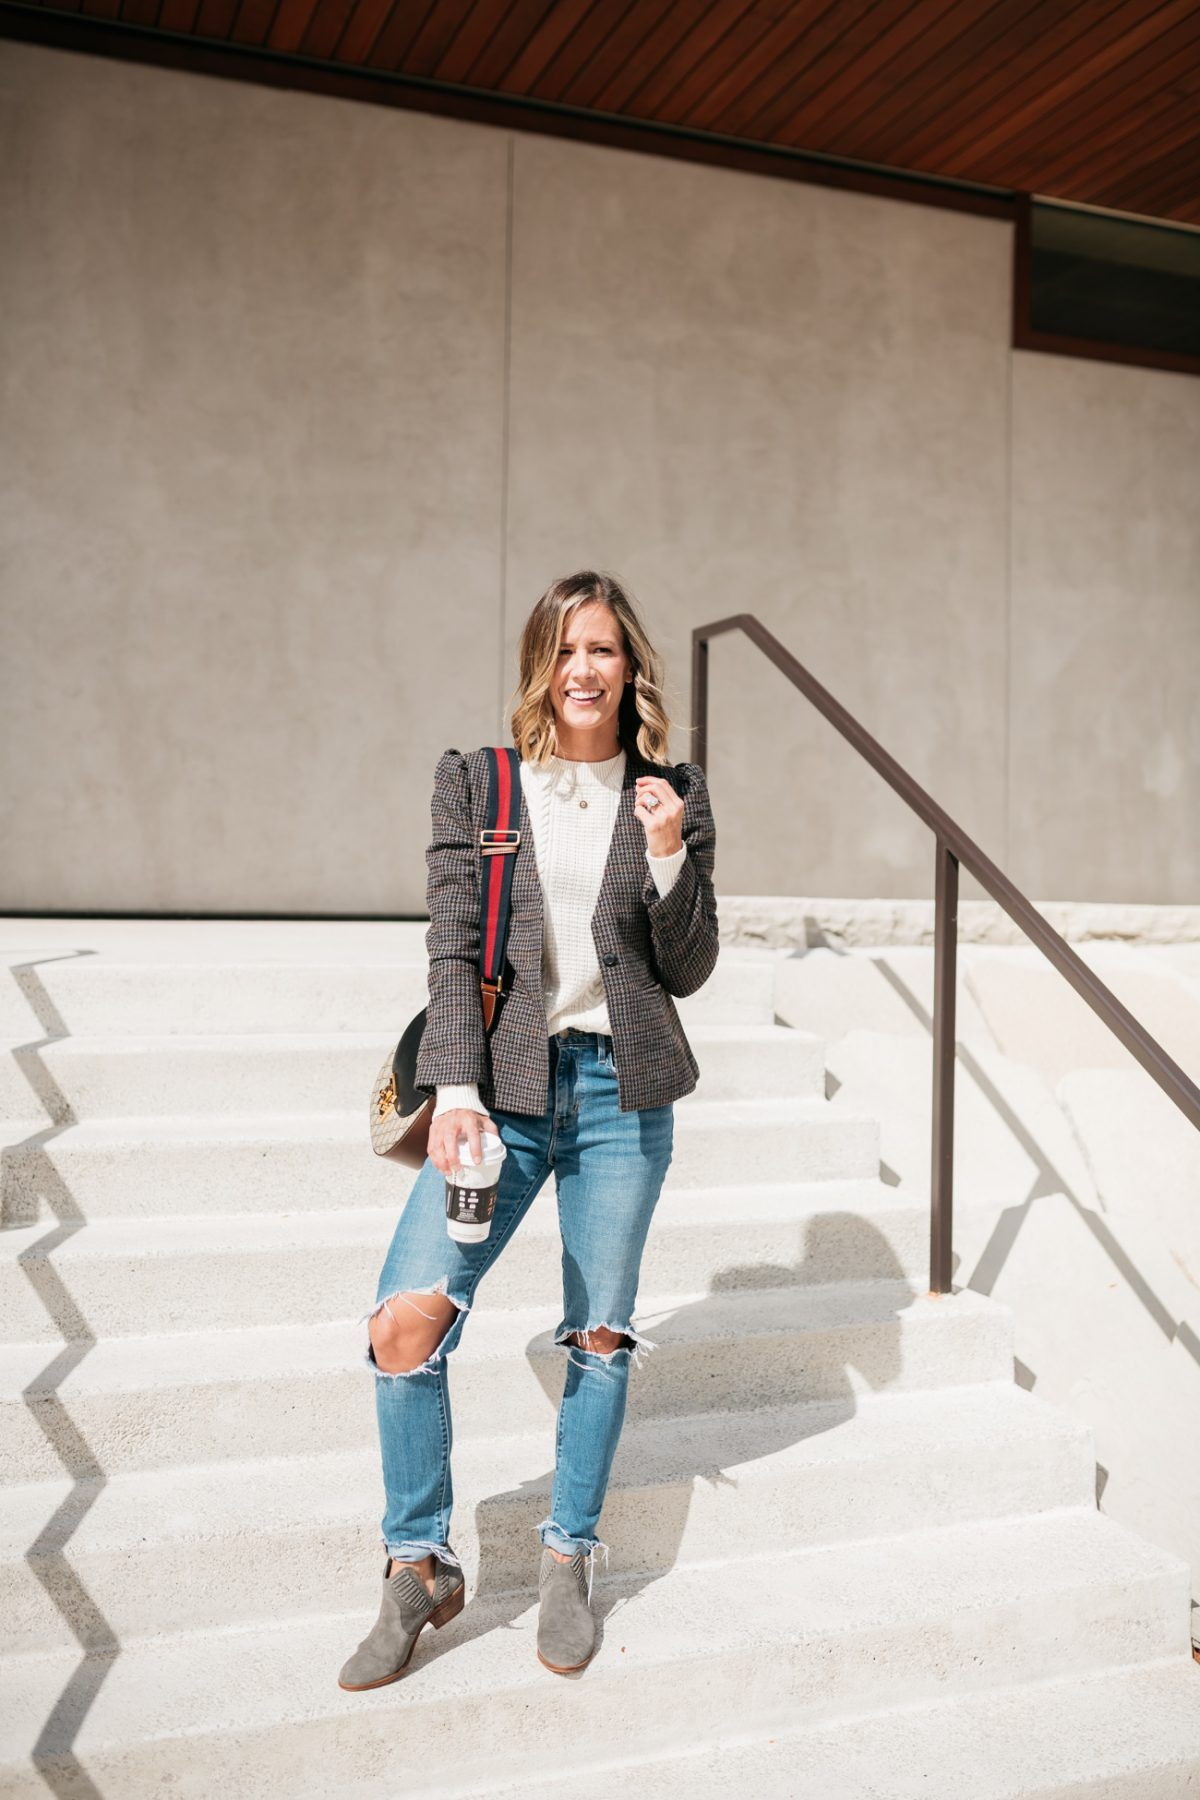 69495fa17134 Fall Style  A Plaid Blazer + Mom Jeans   My Style   Pinterest ...